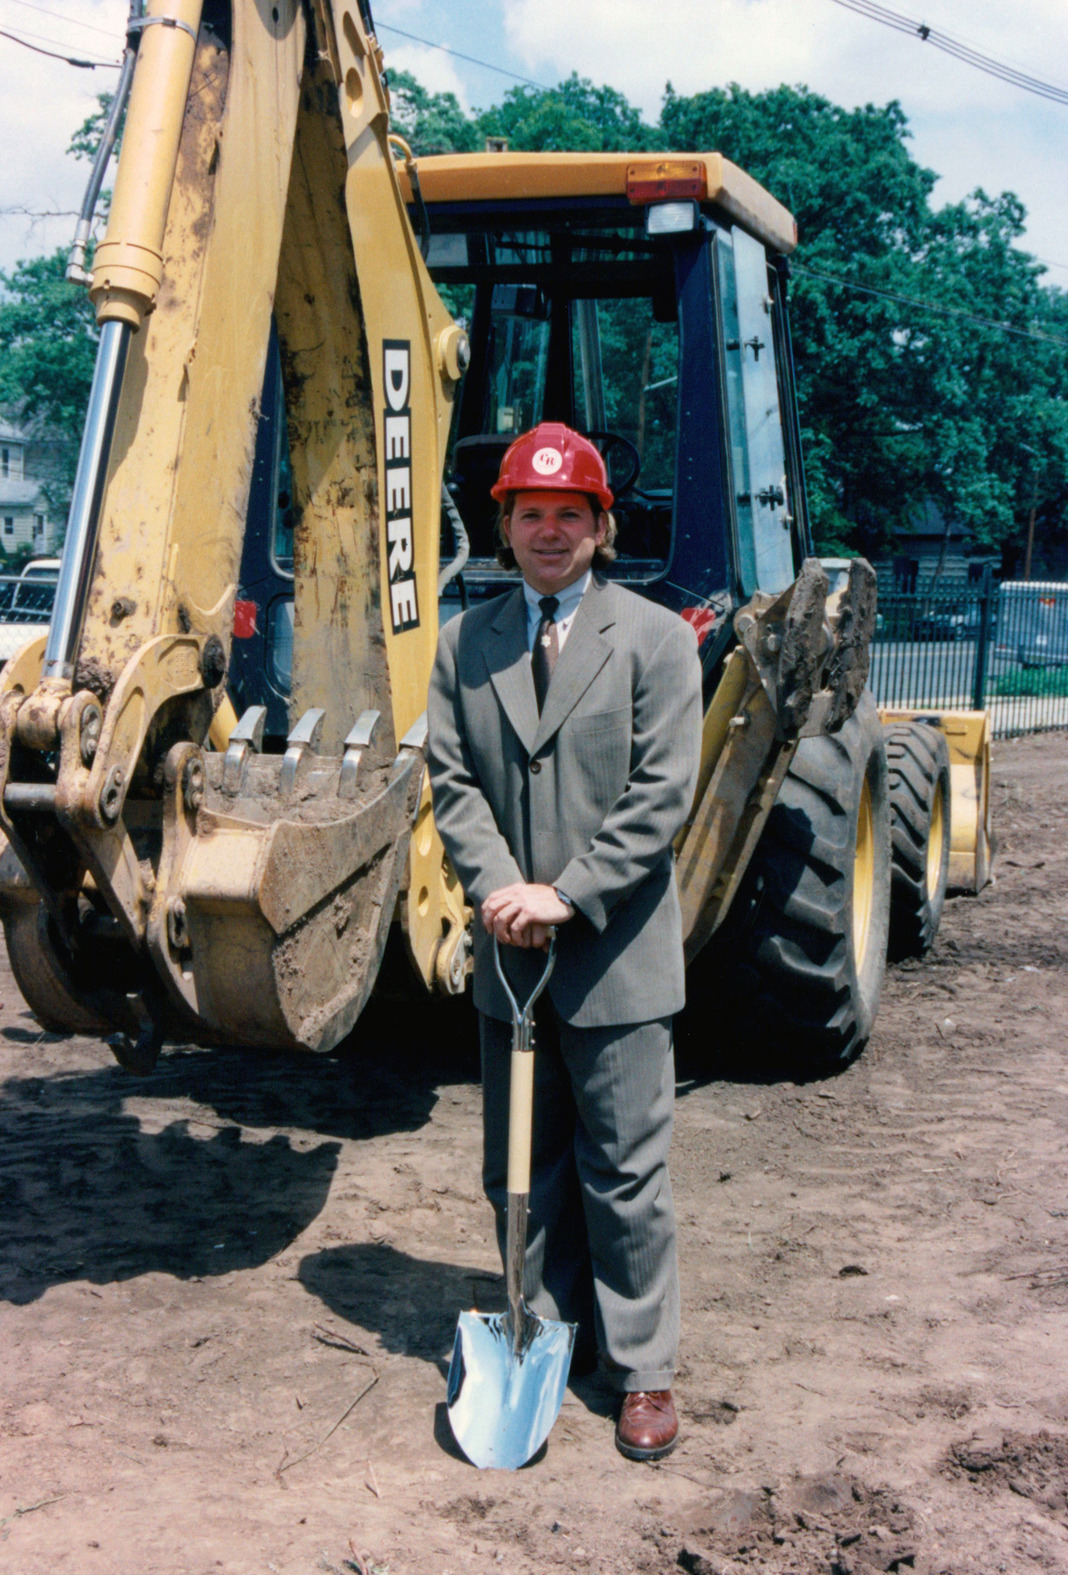 Groundbreaking Ceremony - New Jersey (with hair!)